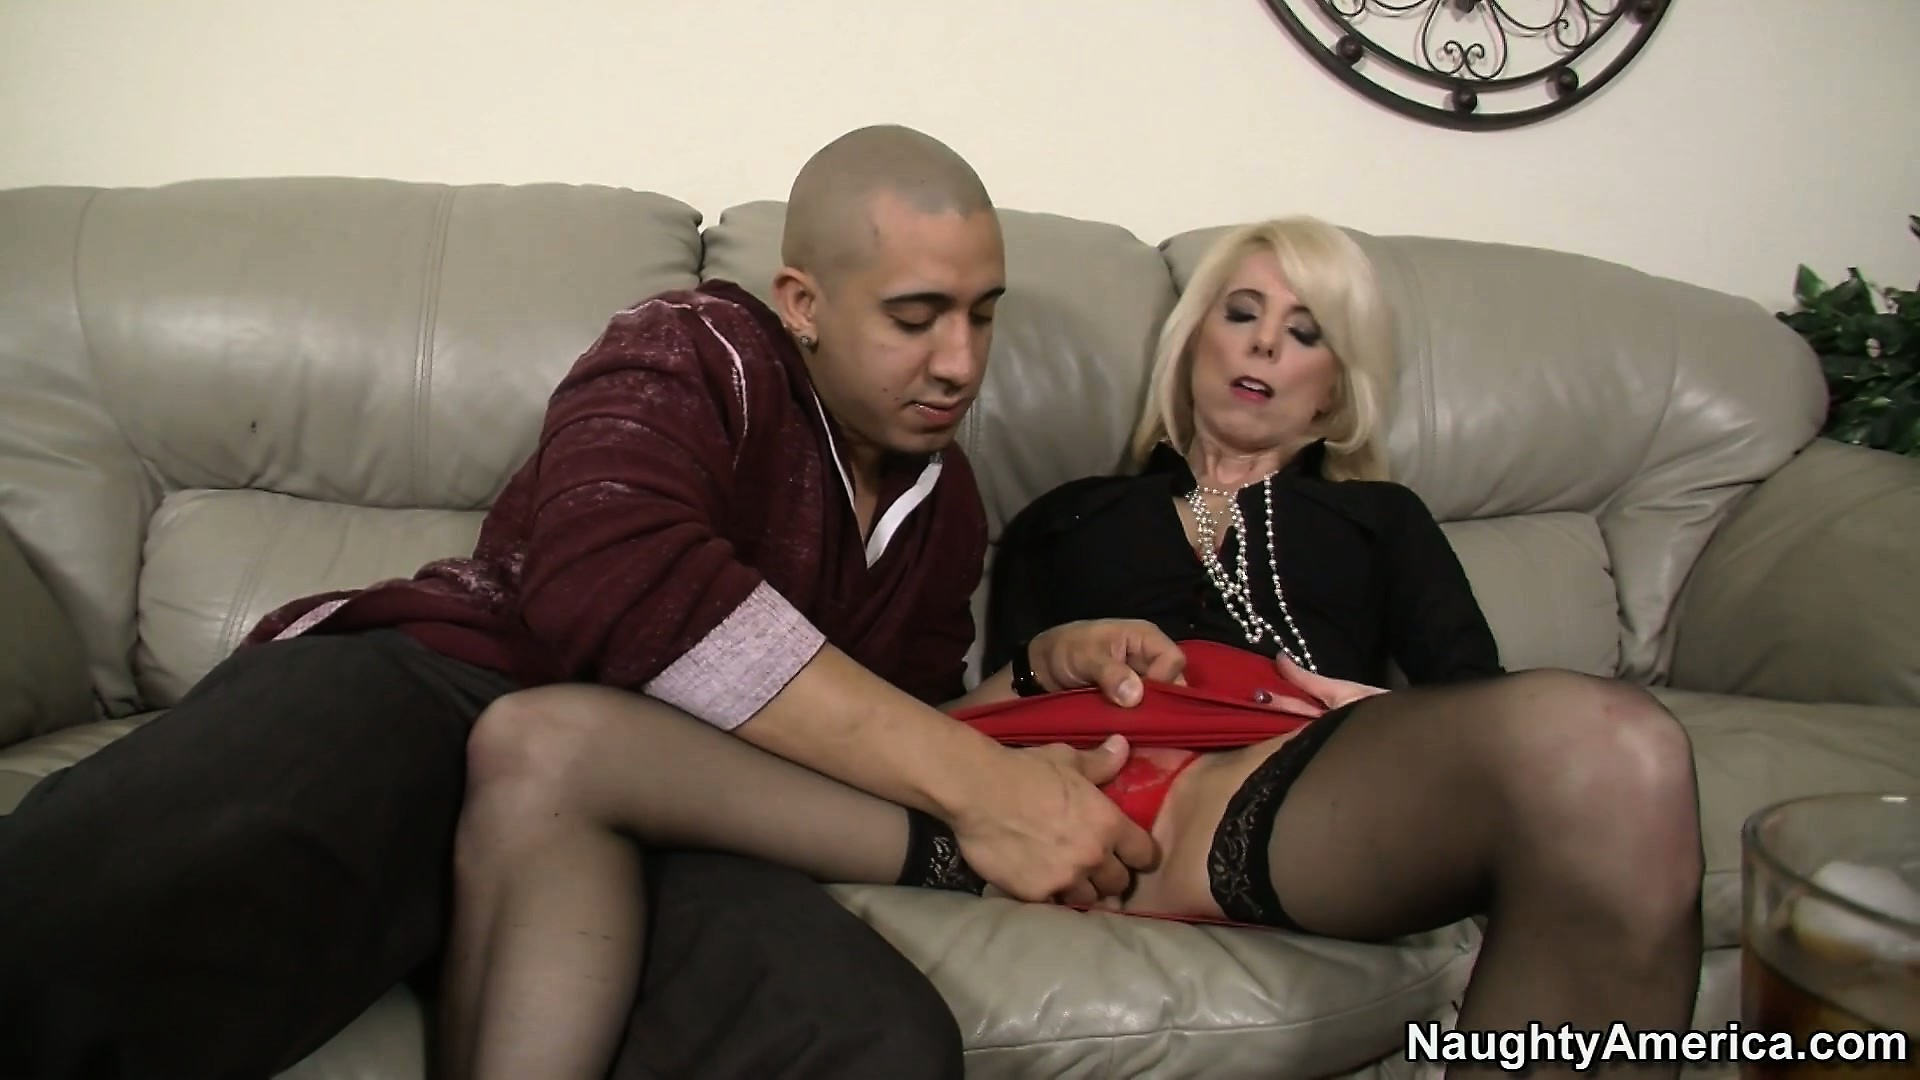 Dick sucking porn photo featuring bruno dickemz and jodie stacks